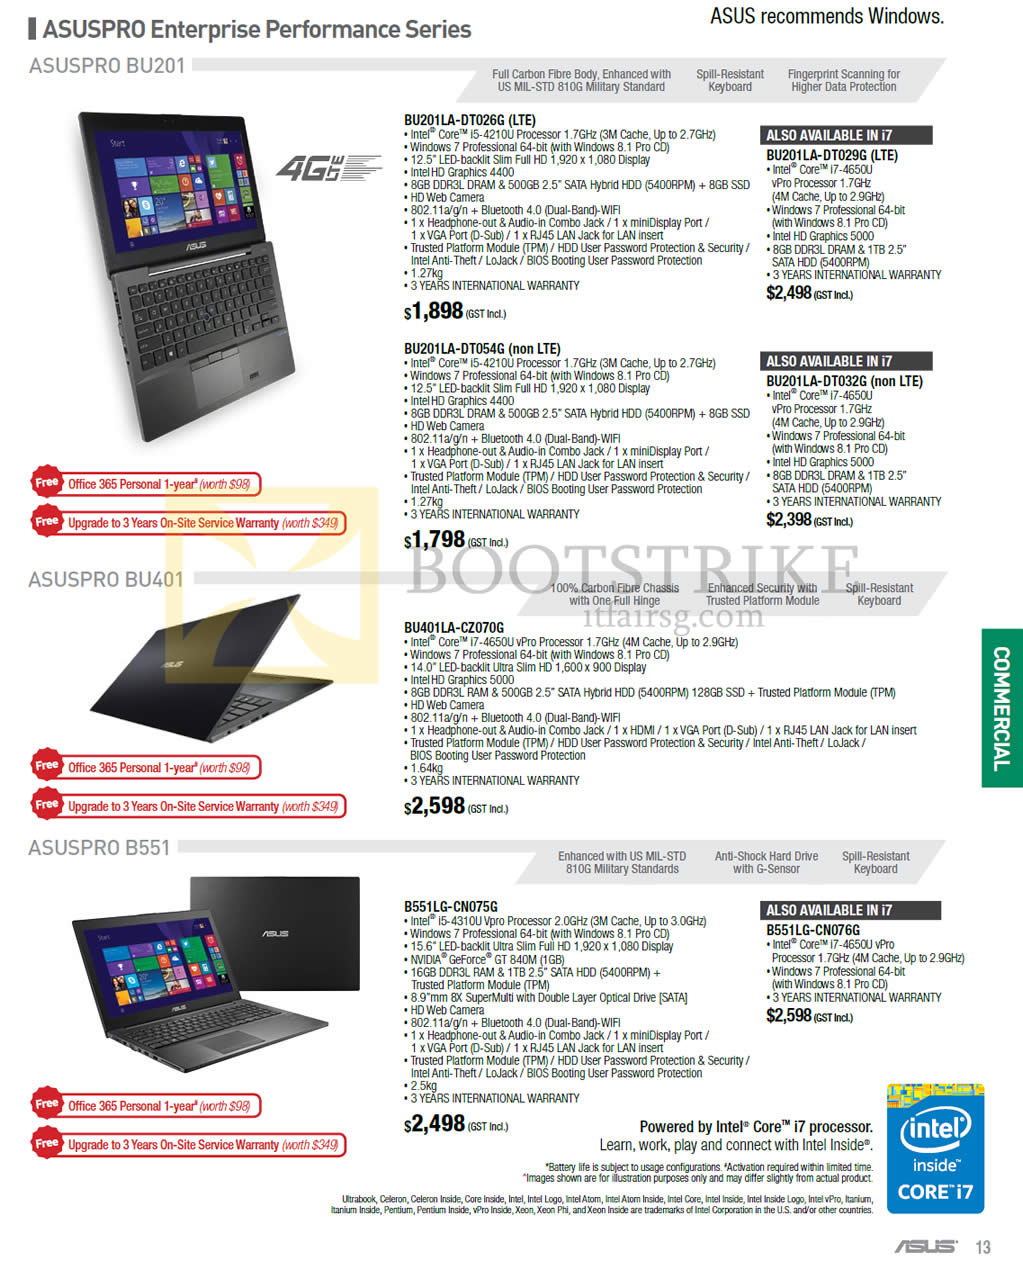 PC SHOW 2015 price list image brochure of ASUS Notebooks Asuspro, BU201LA-DT026G, BU201LA-DT029G, BU201LA-DT054G, BU201LA-DT032G, BU401LA-CZ070G, B551LG-CN075G, B551LG-CN076G